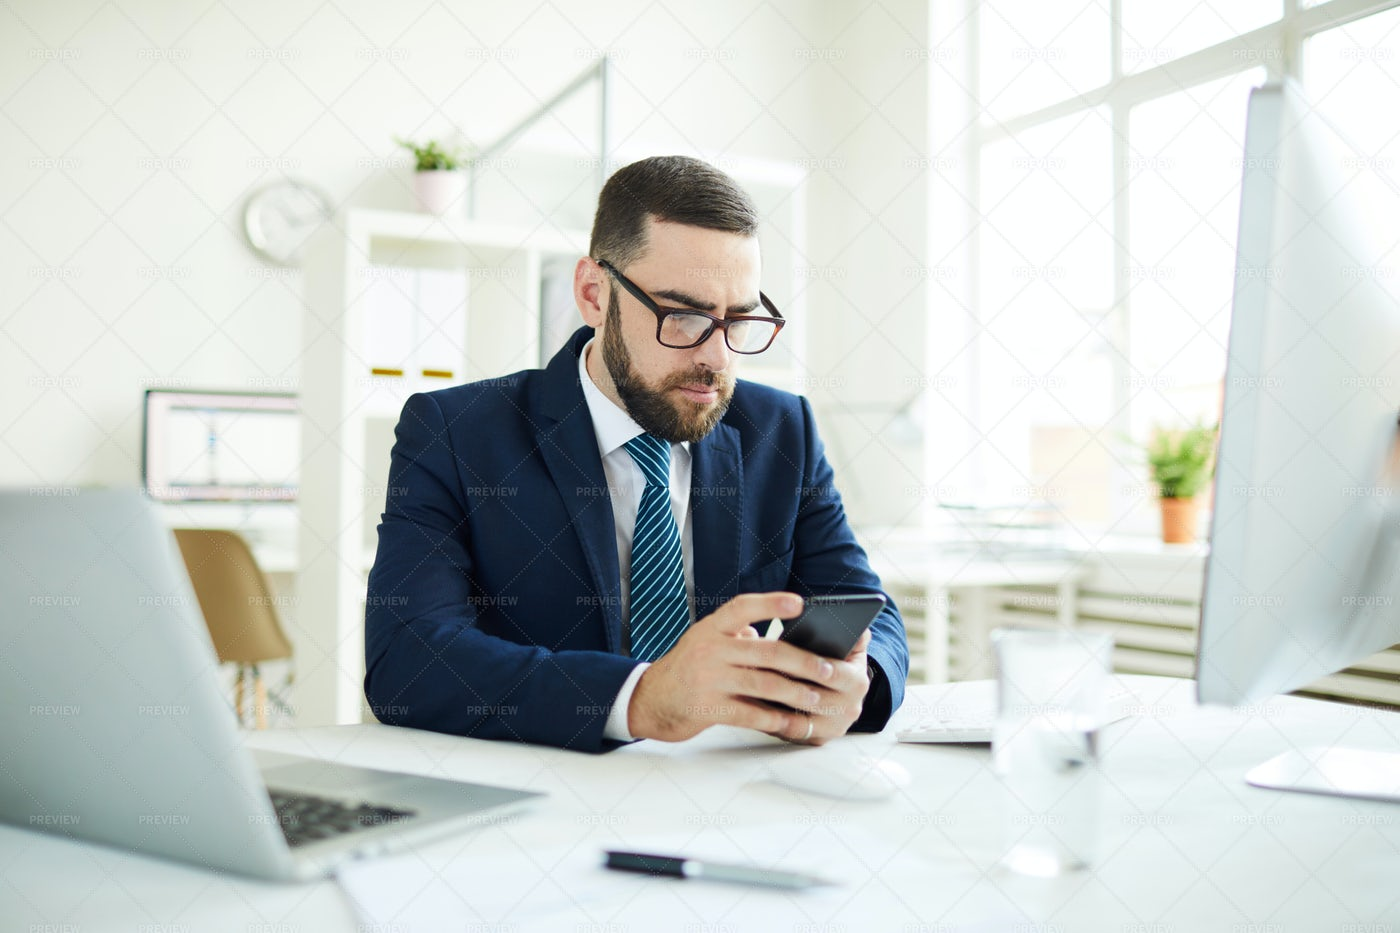 Businessman Reading Sms In Office: Stock Photos